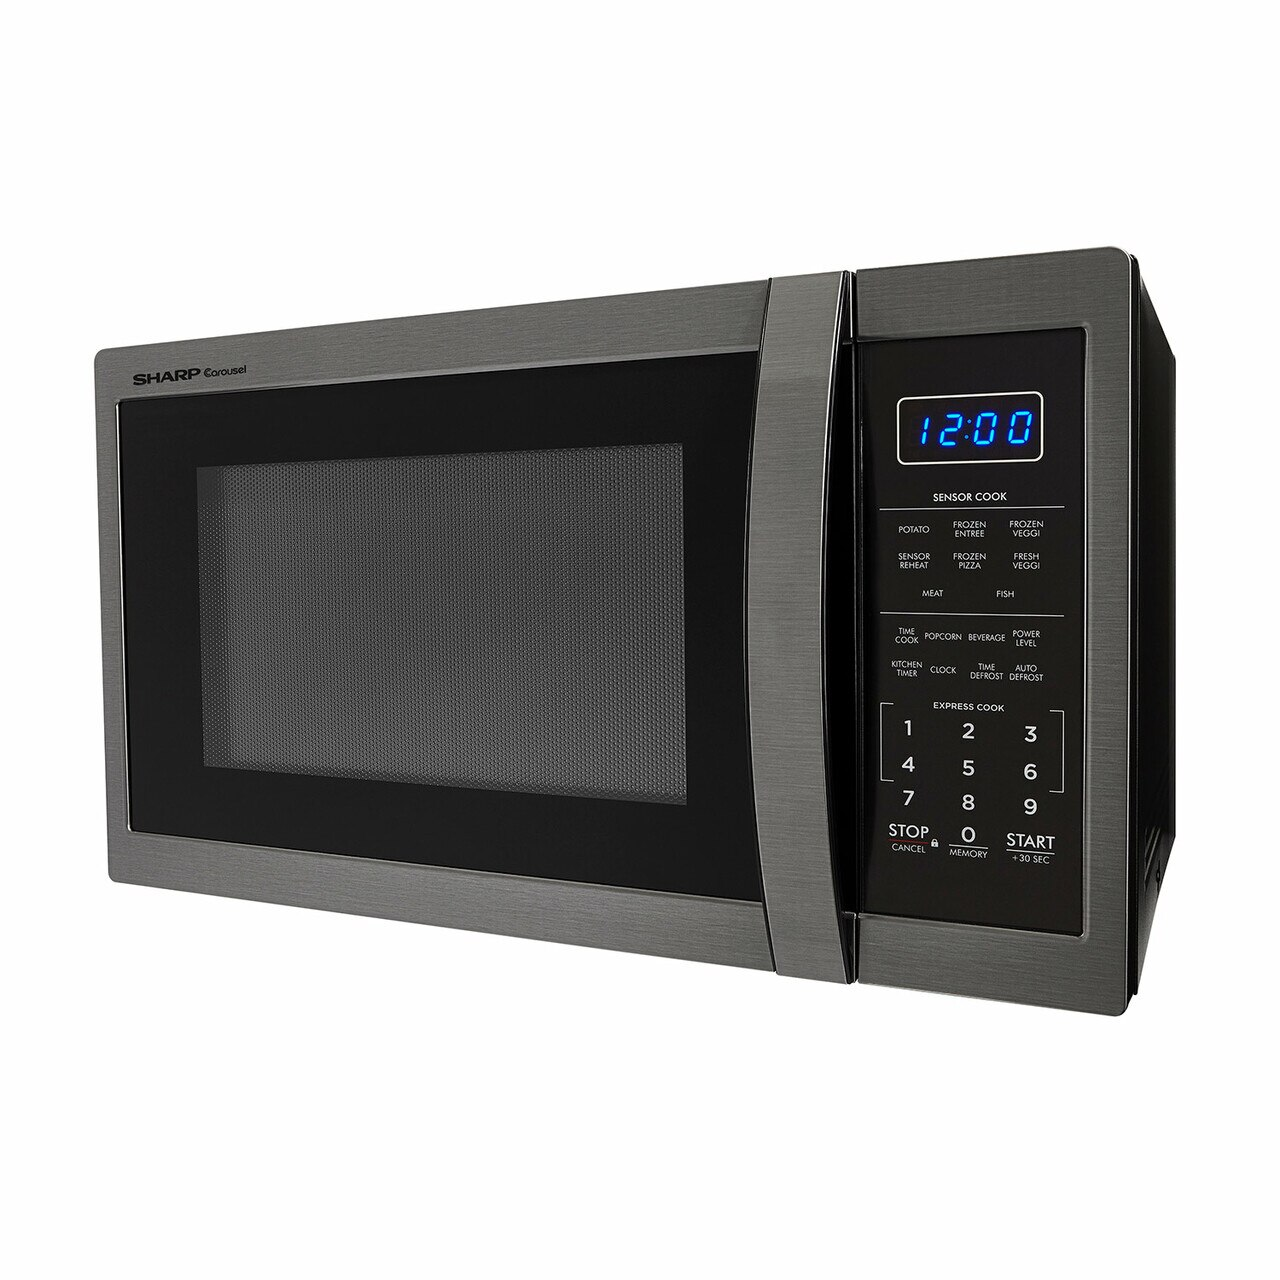 1.4 cu. ft. Sharp Black Stainless Steel Microwave (SMC1452CH) – left side view